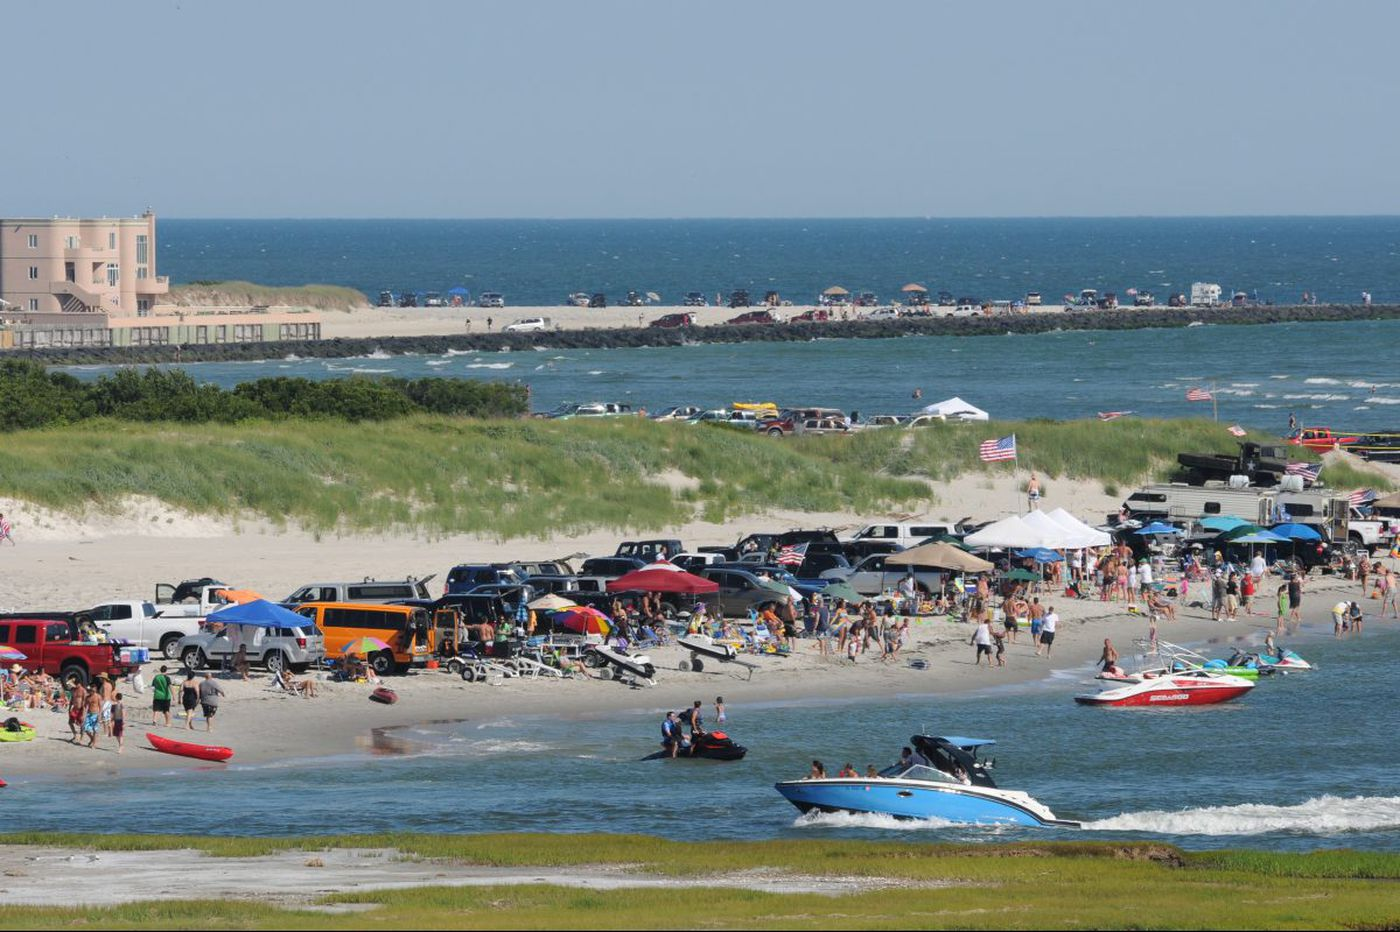 Down the Shore, lesser-known beach spots with some surprising perks